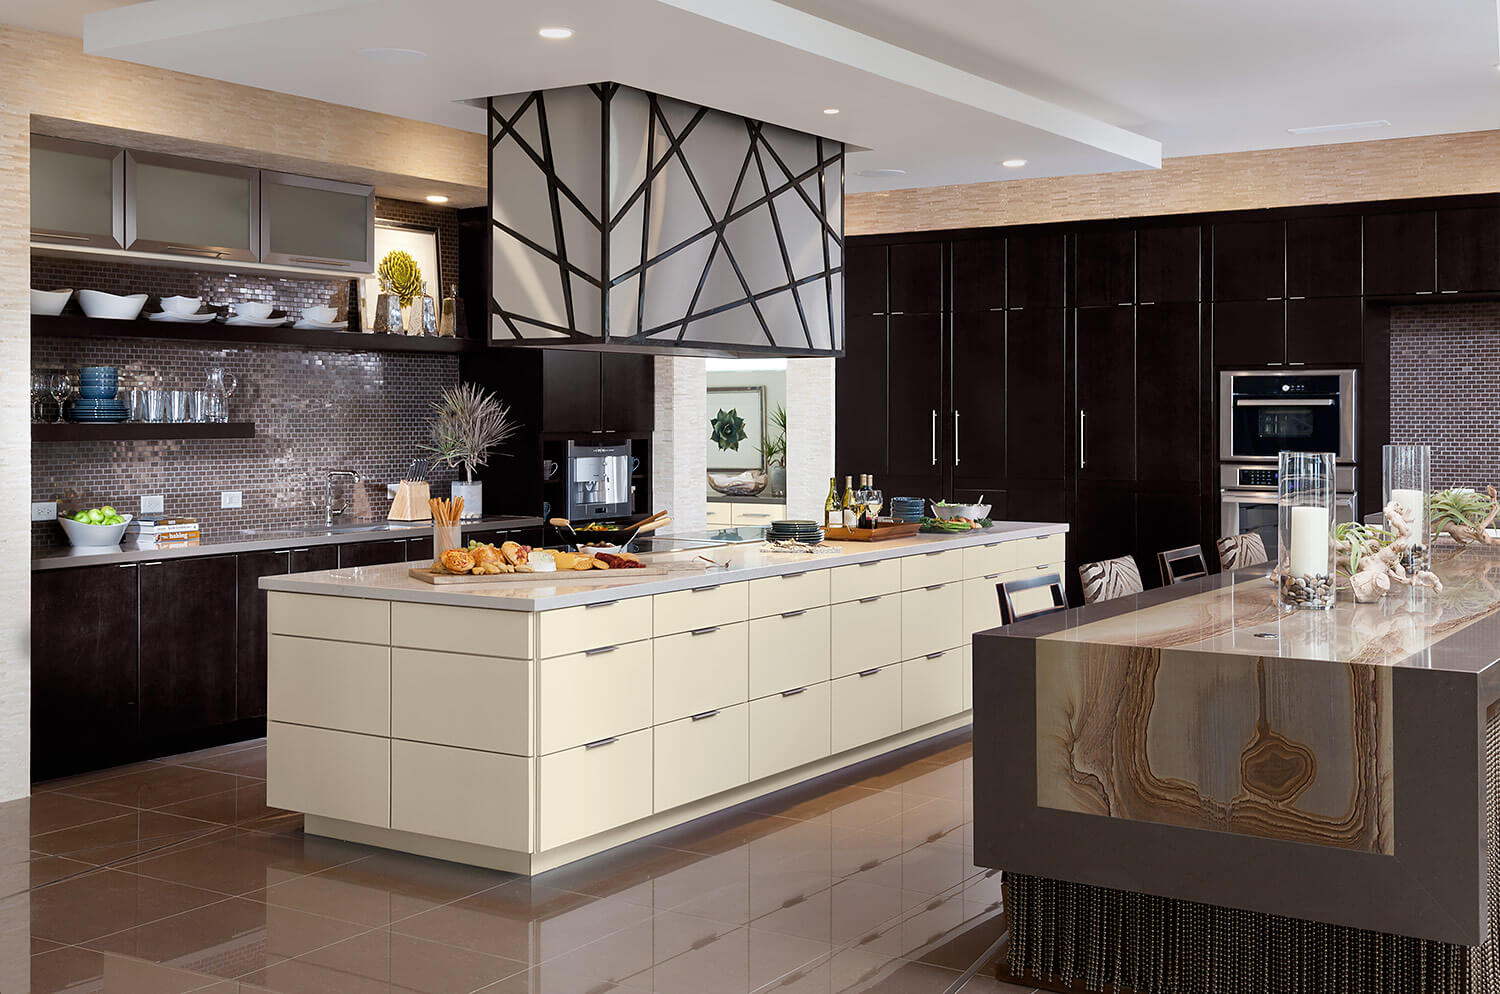 Timberlake Cabinetry design and service spotlighted in 2014 New